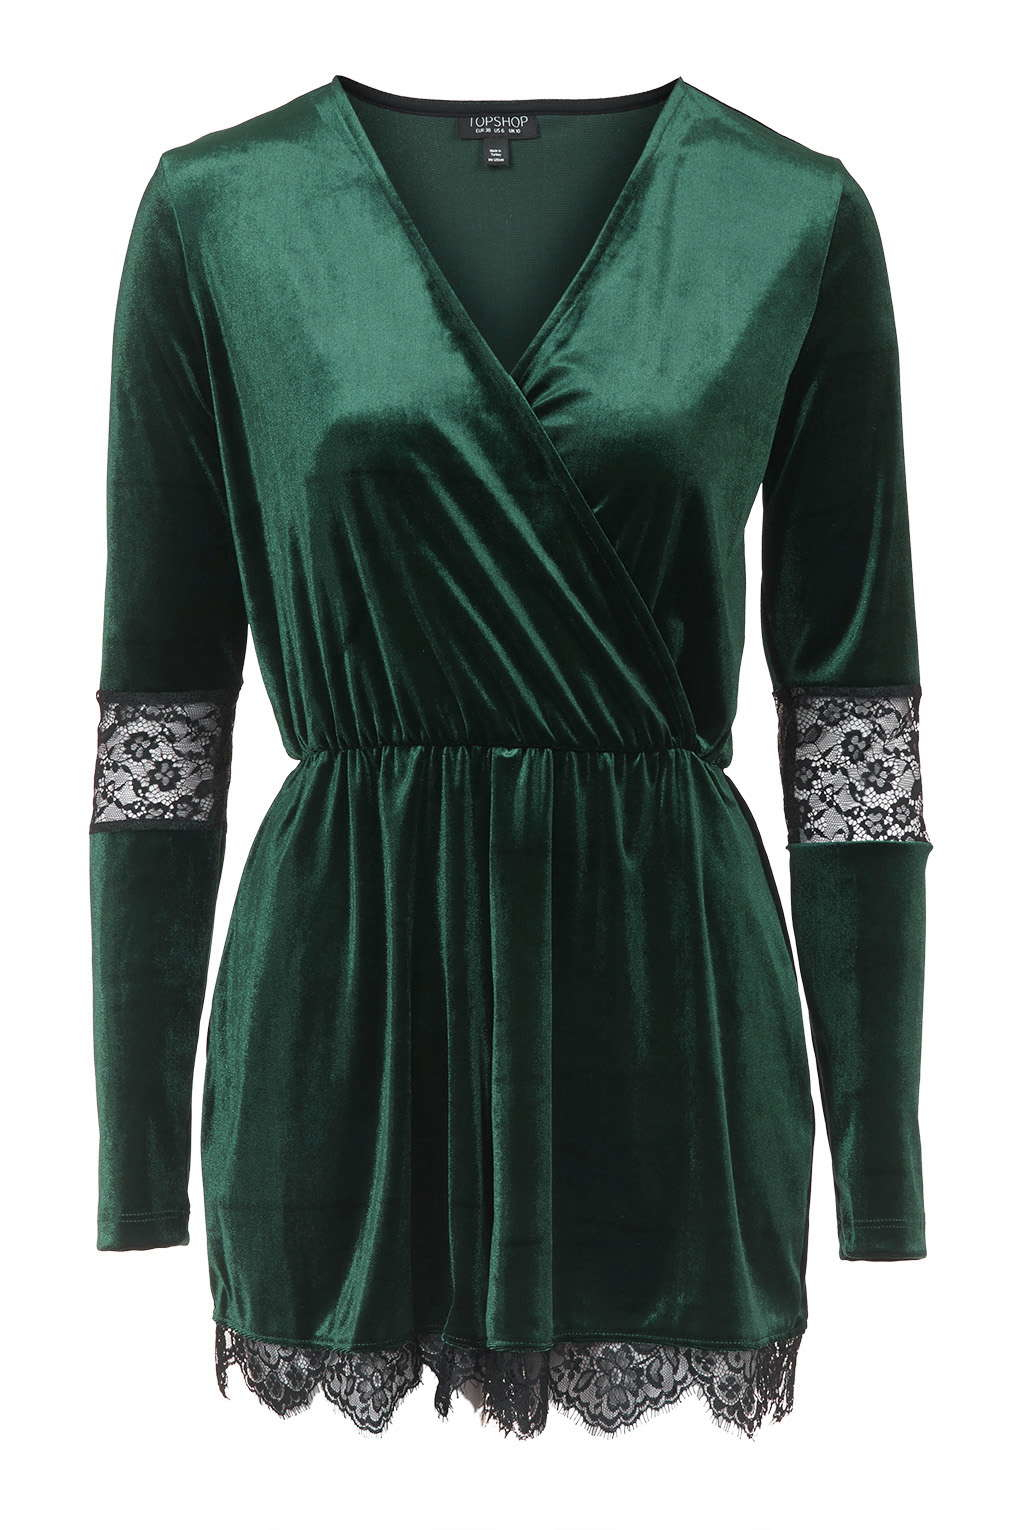 65861c4a486 TOPSHOP Velvet Lace Playsuit in Green - Lyst